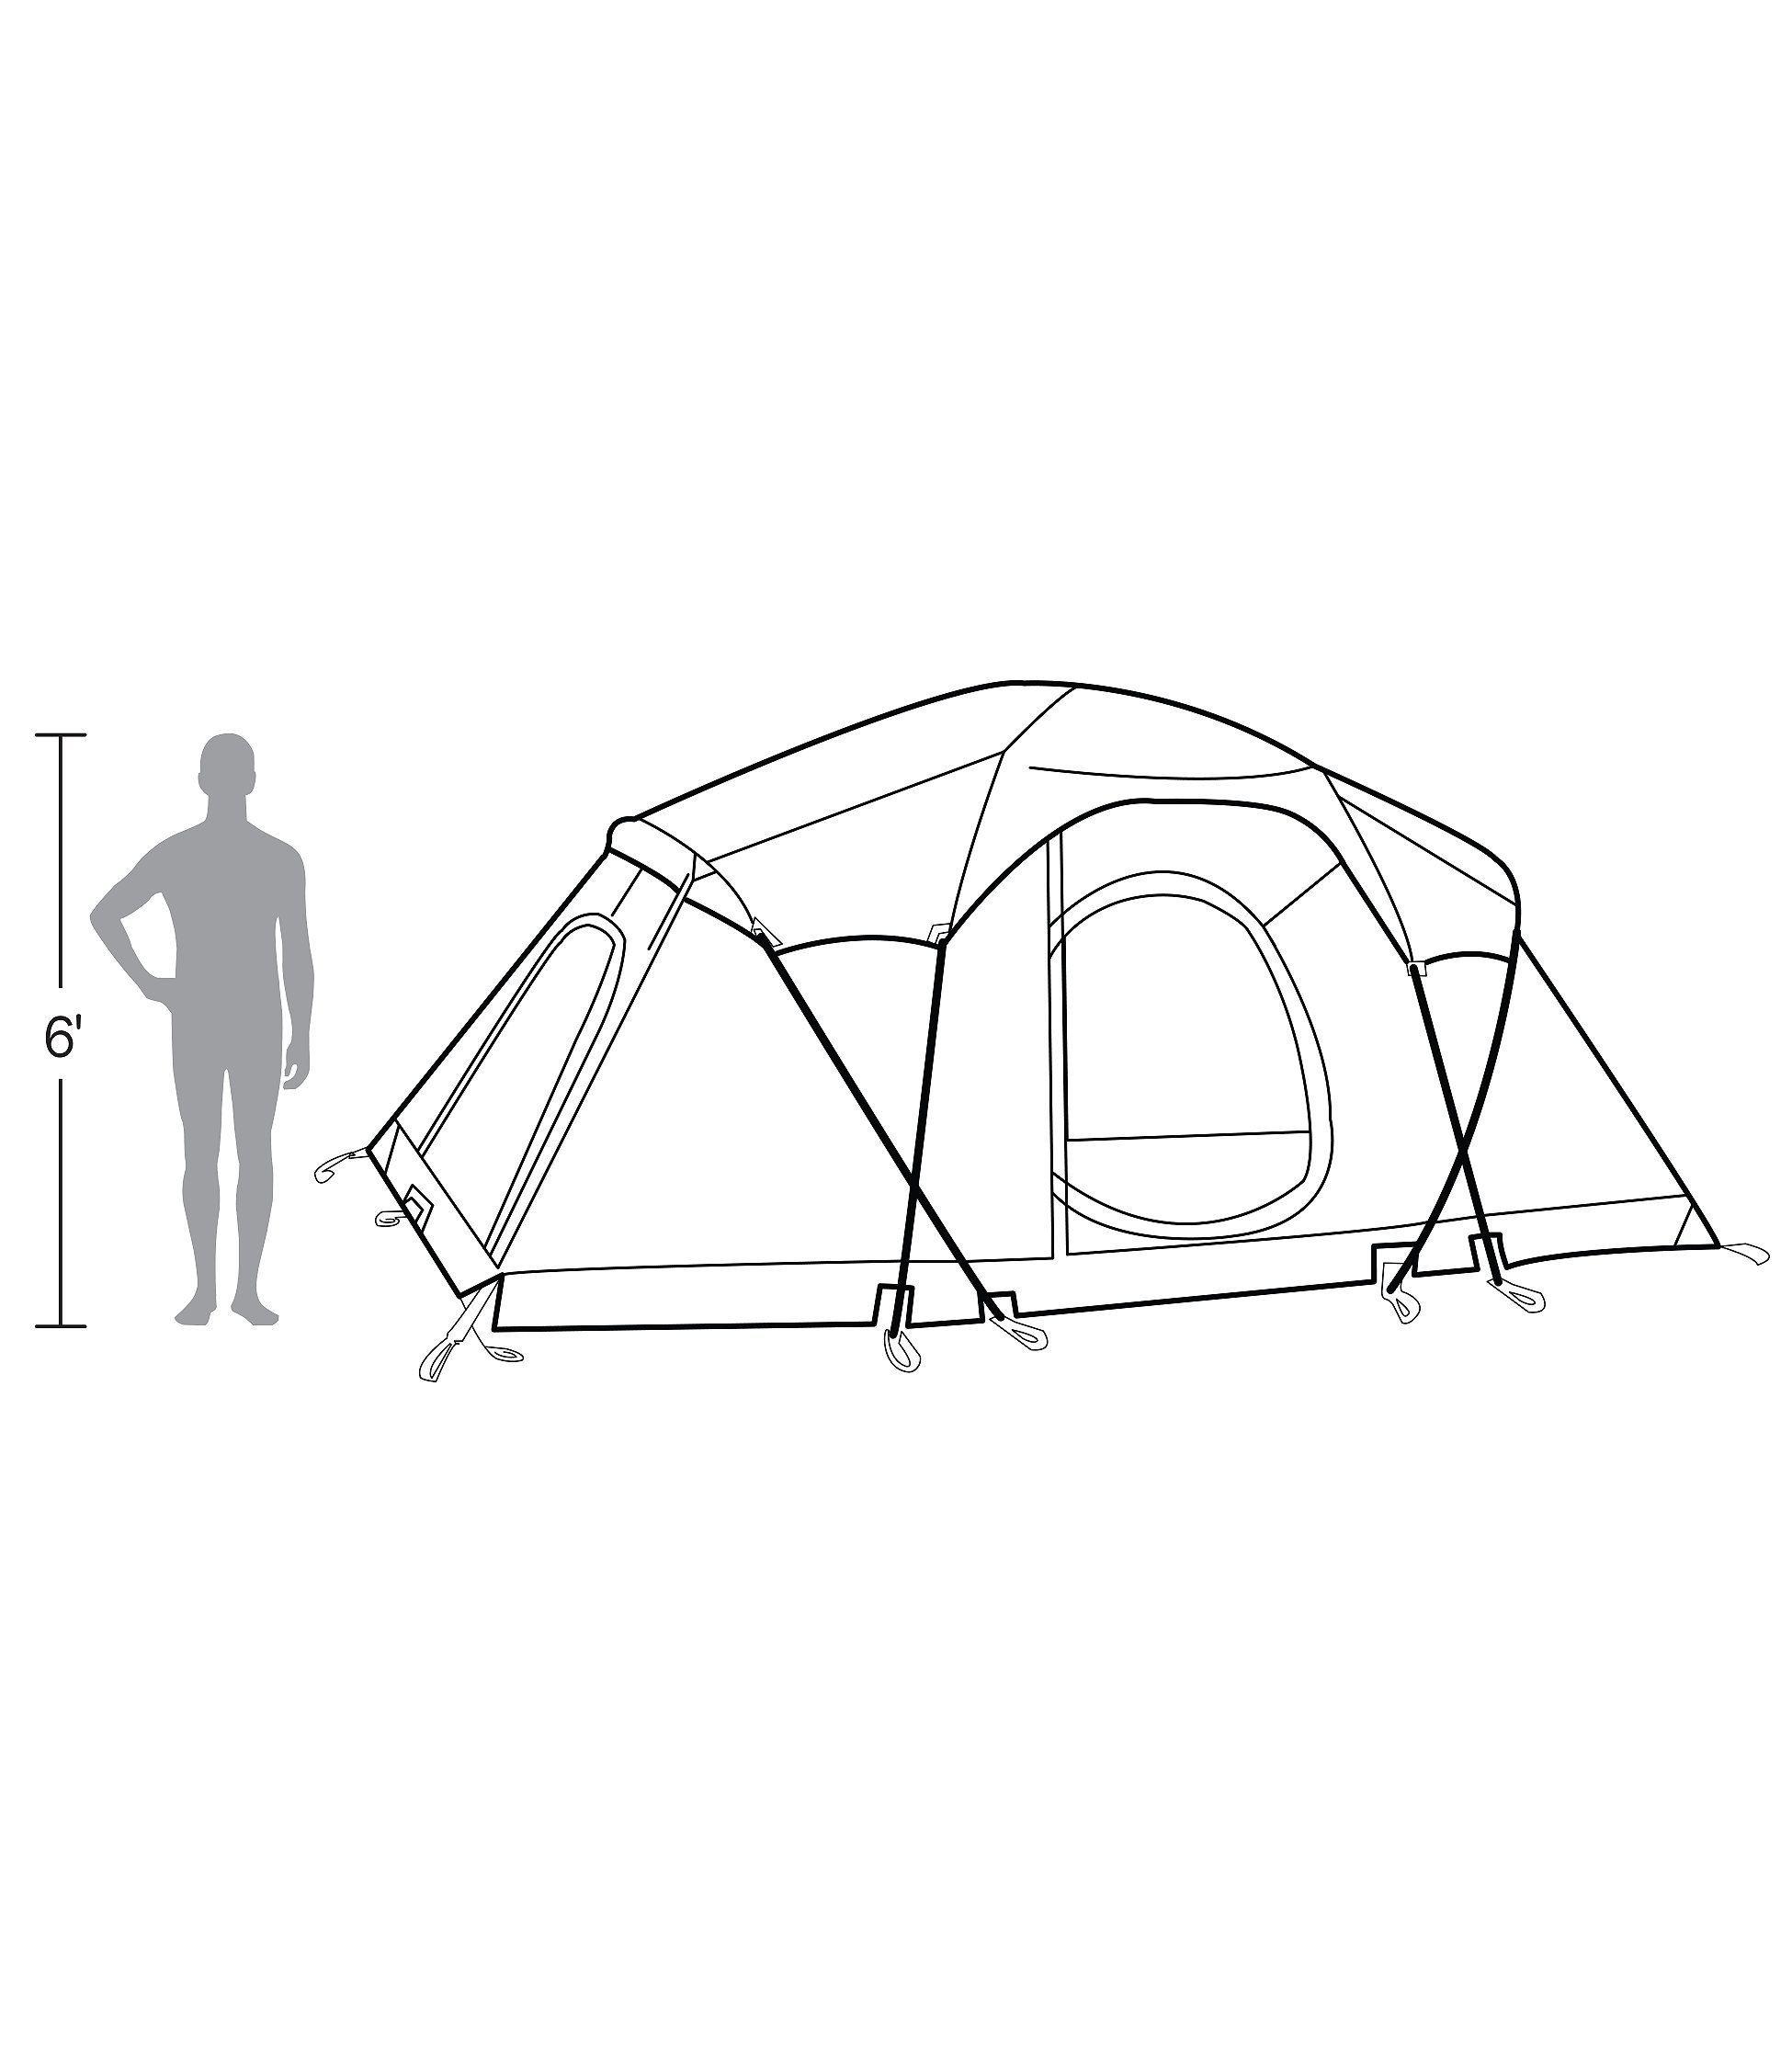 L.L.Bean Big Woods 3-Room 8-Person Dome Tent $500 This  sc 1 st  Pinterest & L.L.Bean Big Woods 3-Room 8-Person Dome Tent $500 This spacious ...